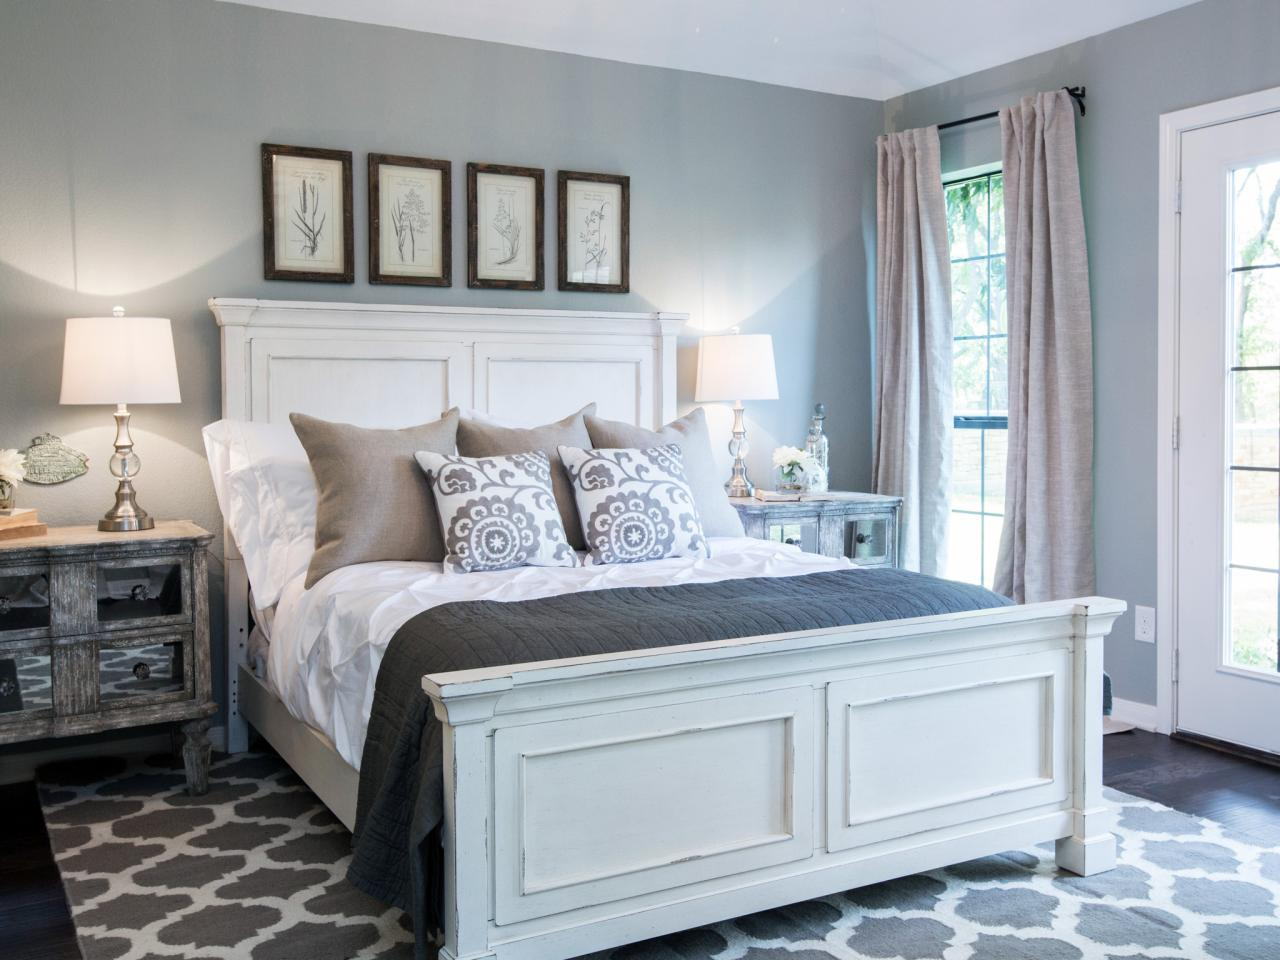 Chip and joanna gaines bed and breakfast home decorating for Master bedroom decor